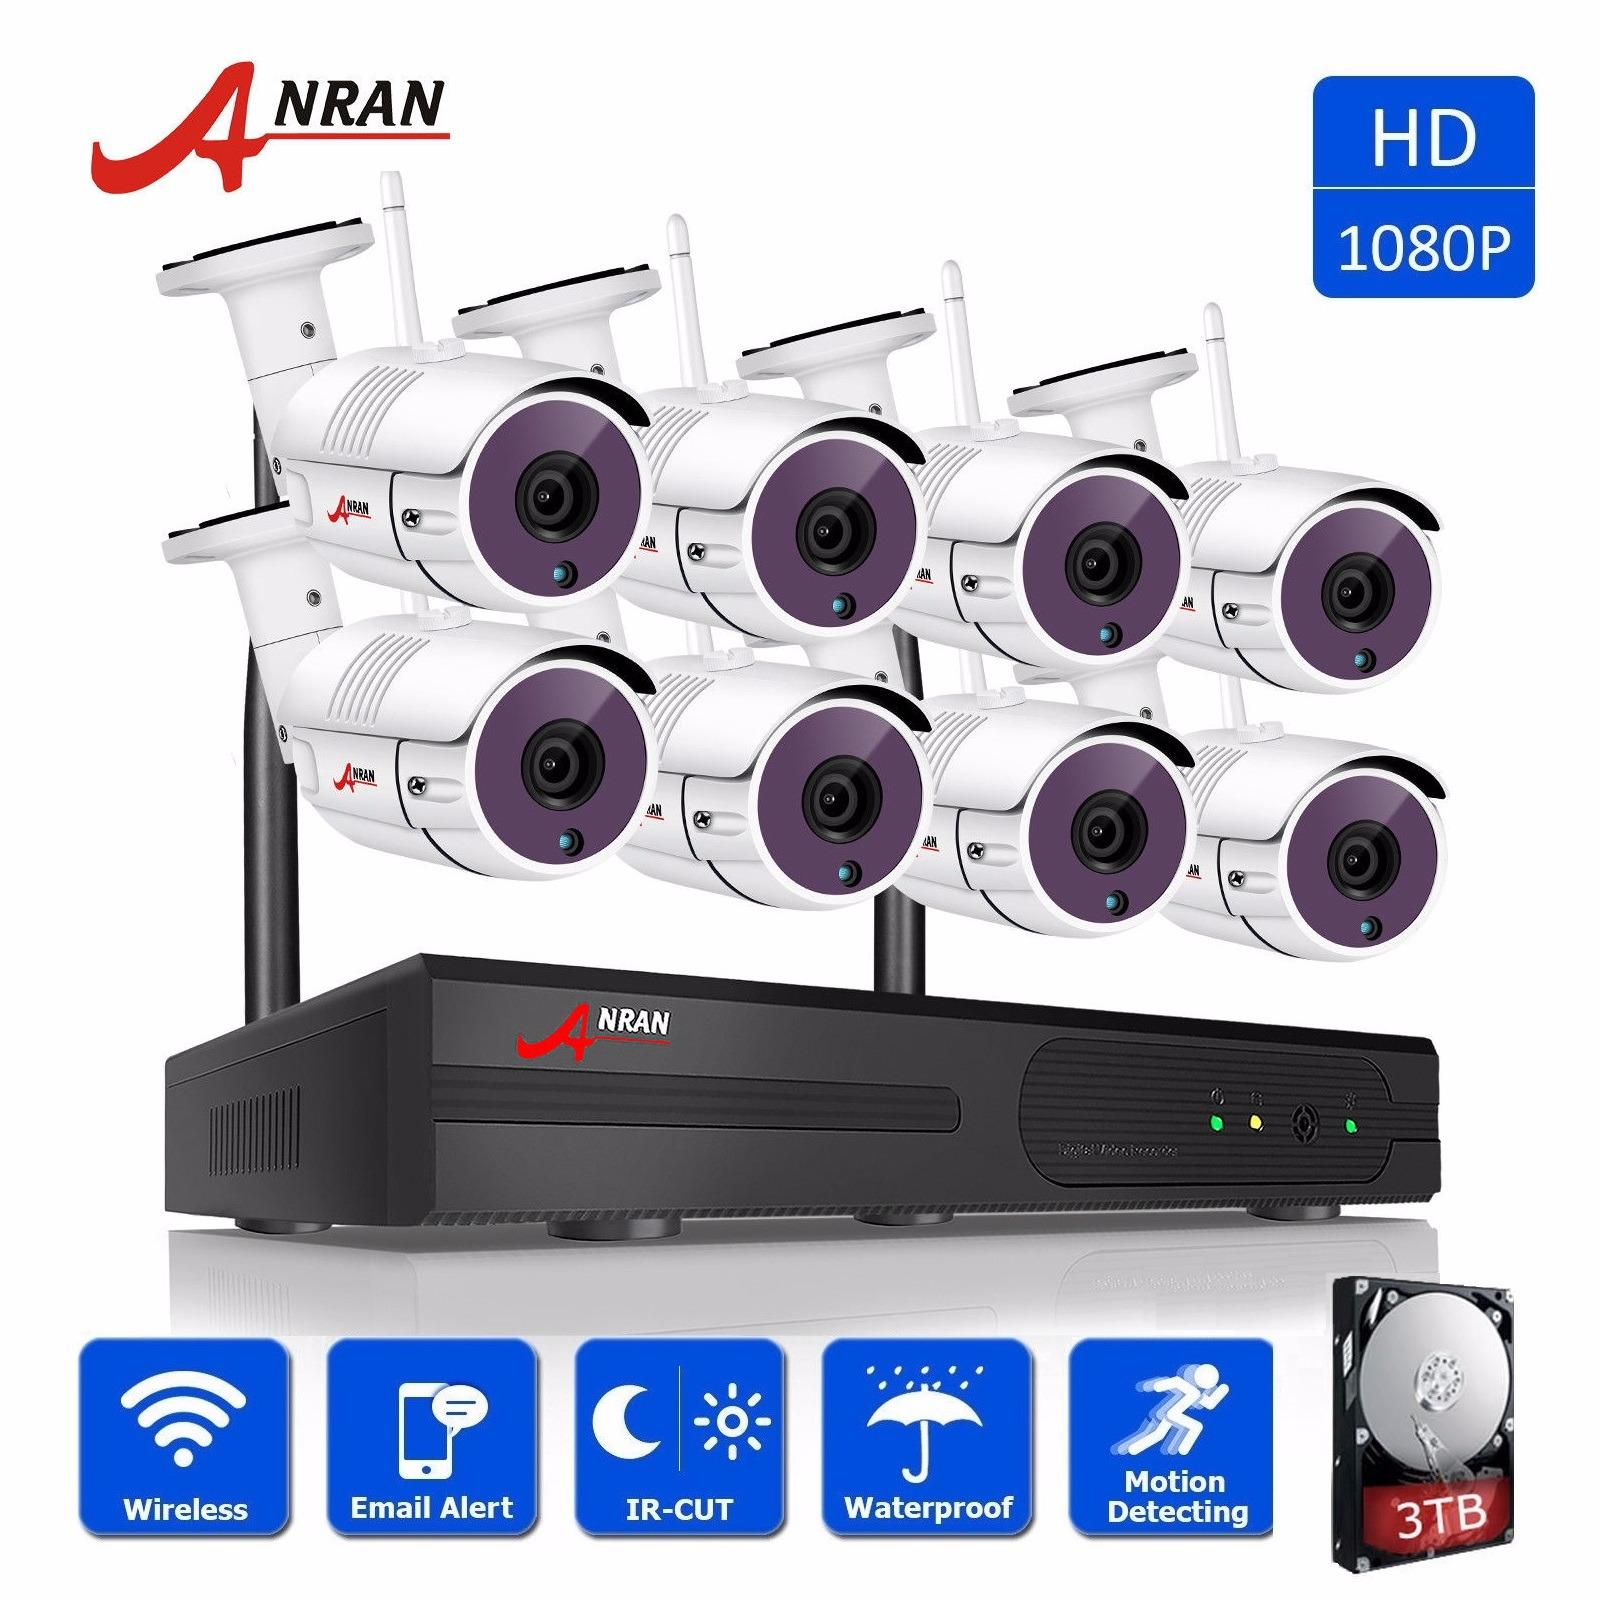 ANRAN 8CH 1080P NVR Wireless Security Camera System With 8Pcs 2.0MP HD Indoor Outdoor Home Security Cameras